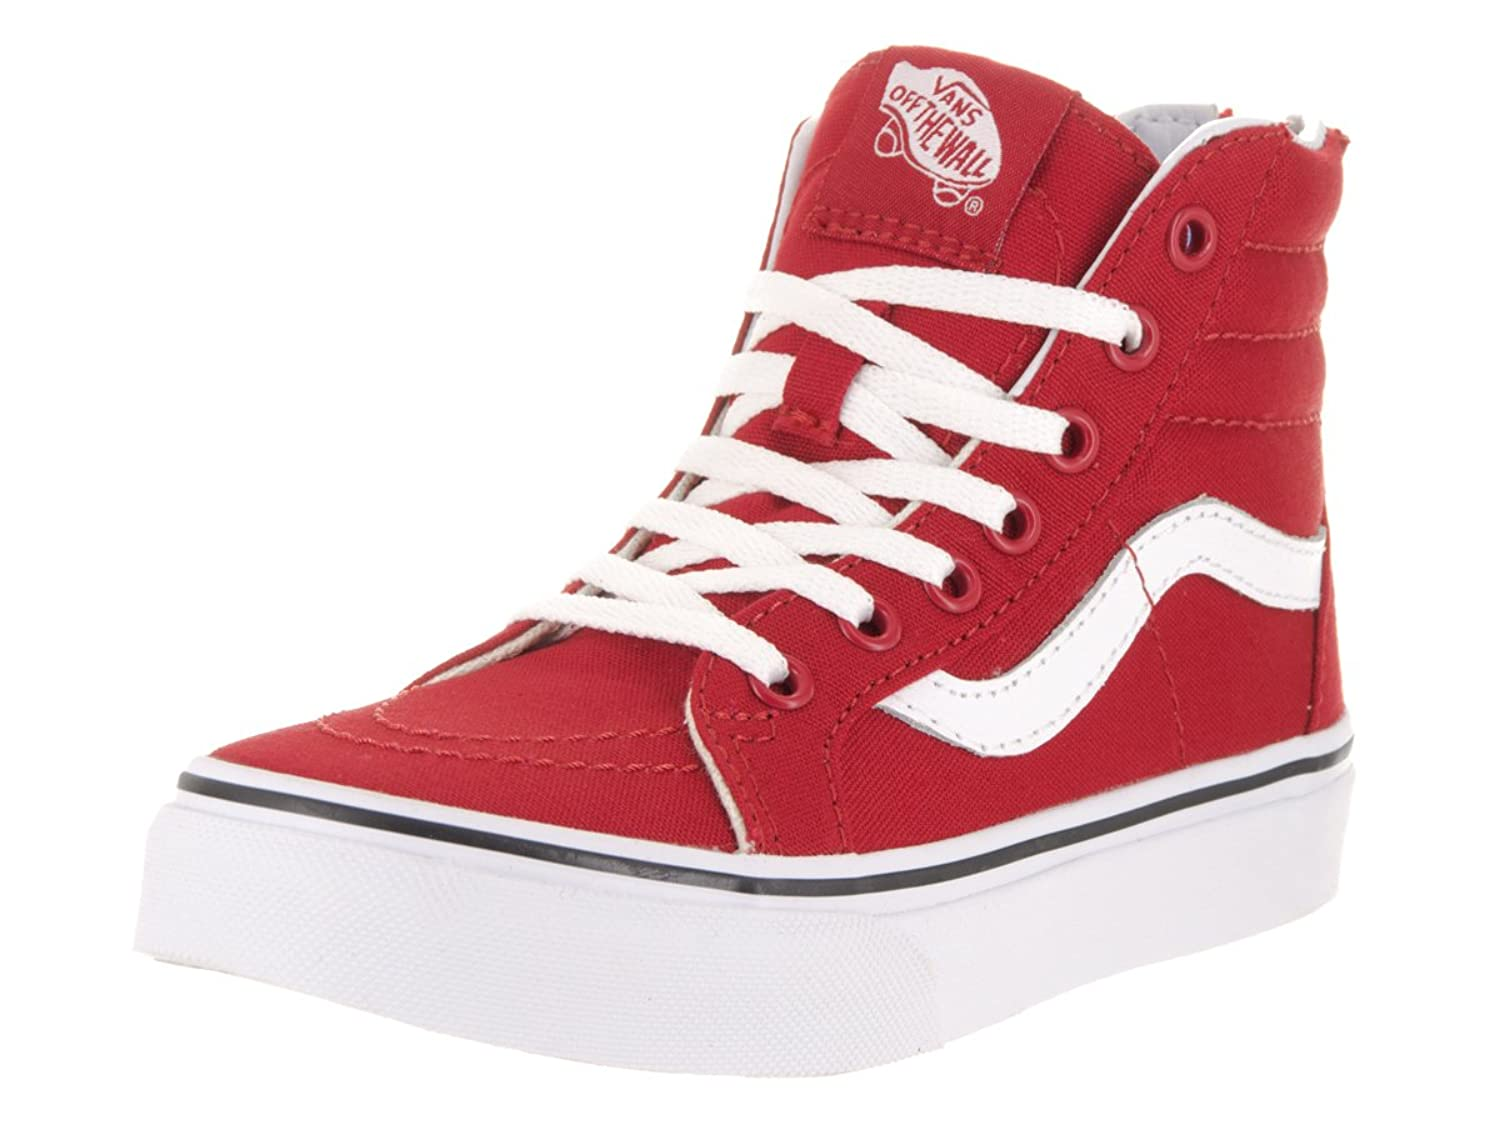 9bfb0b346d Vans Sk8-Hi Zip Shoes Little Kids